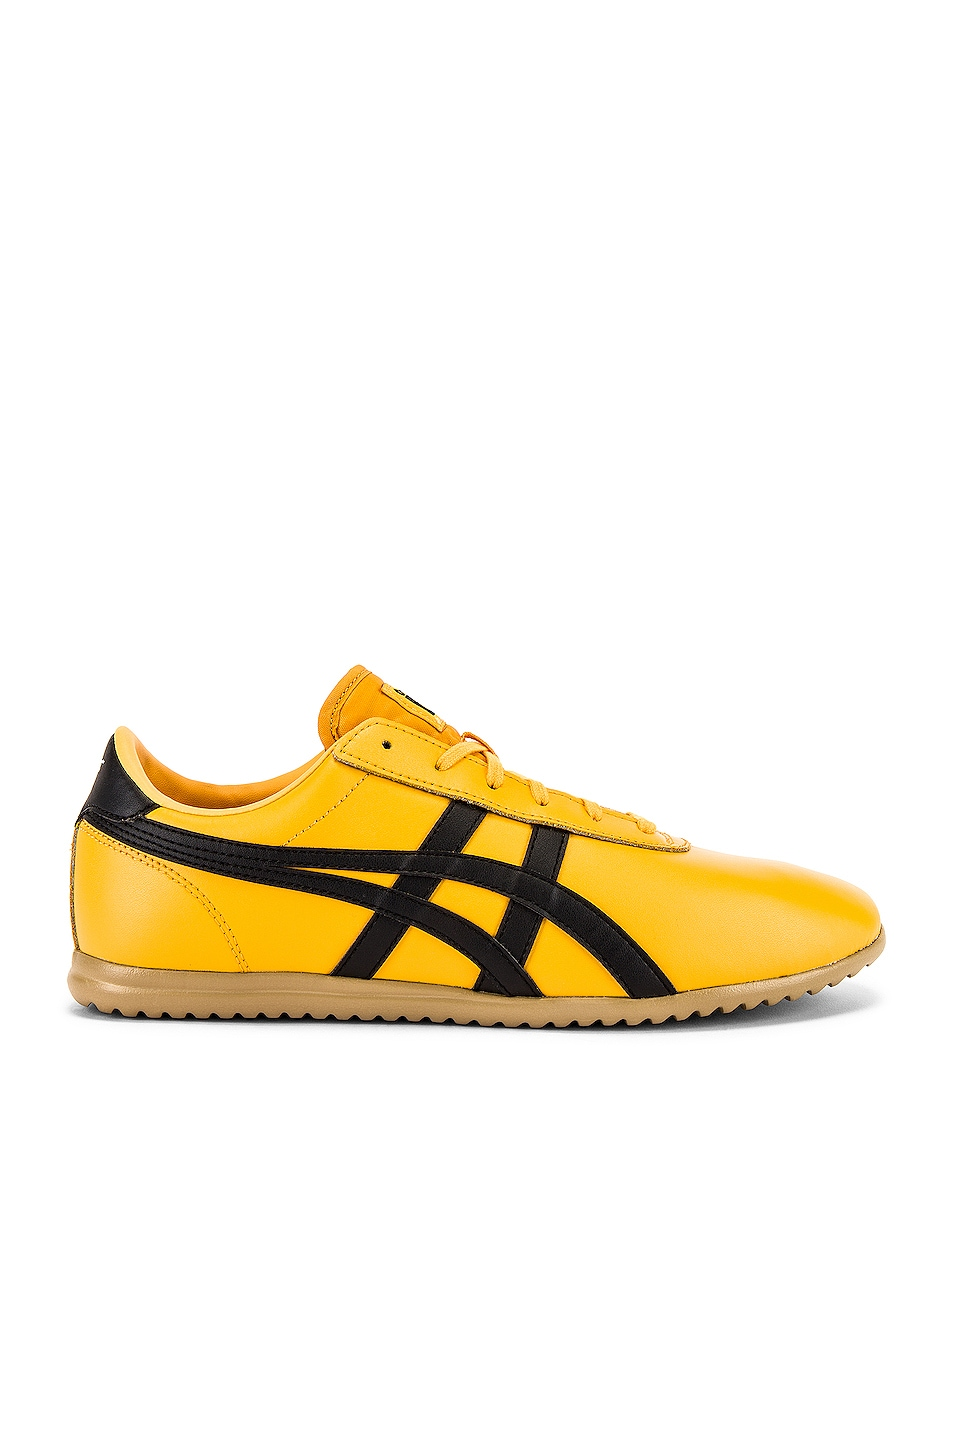 Image 2 of Onitsuka Tiger Tai-Chi-Reb in Tiger Yellow & Black